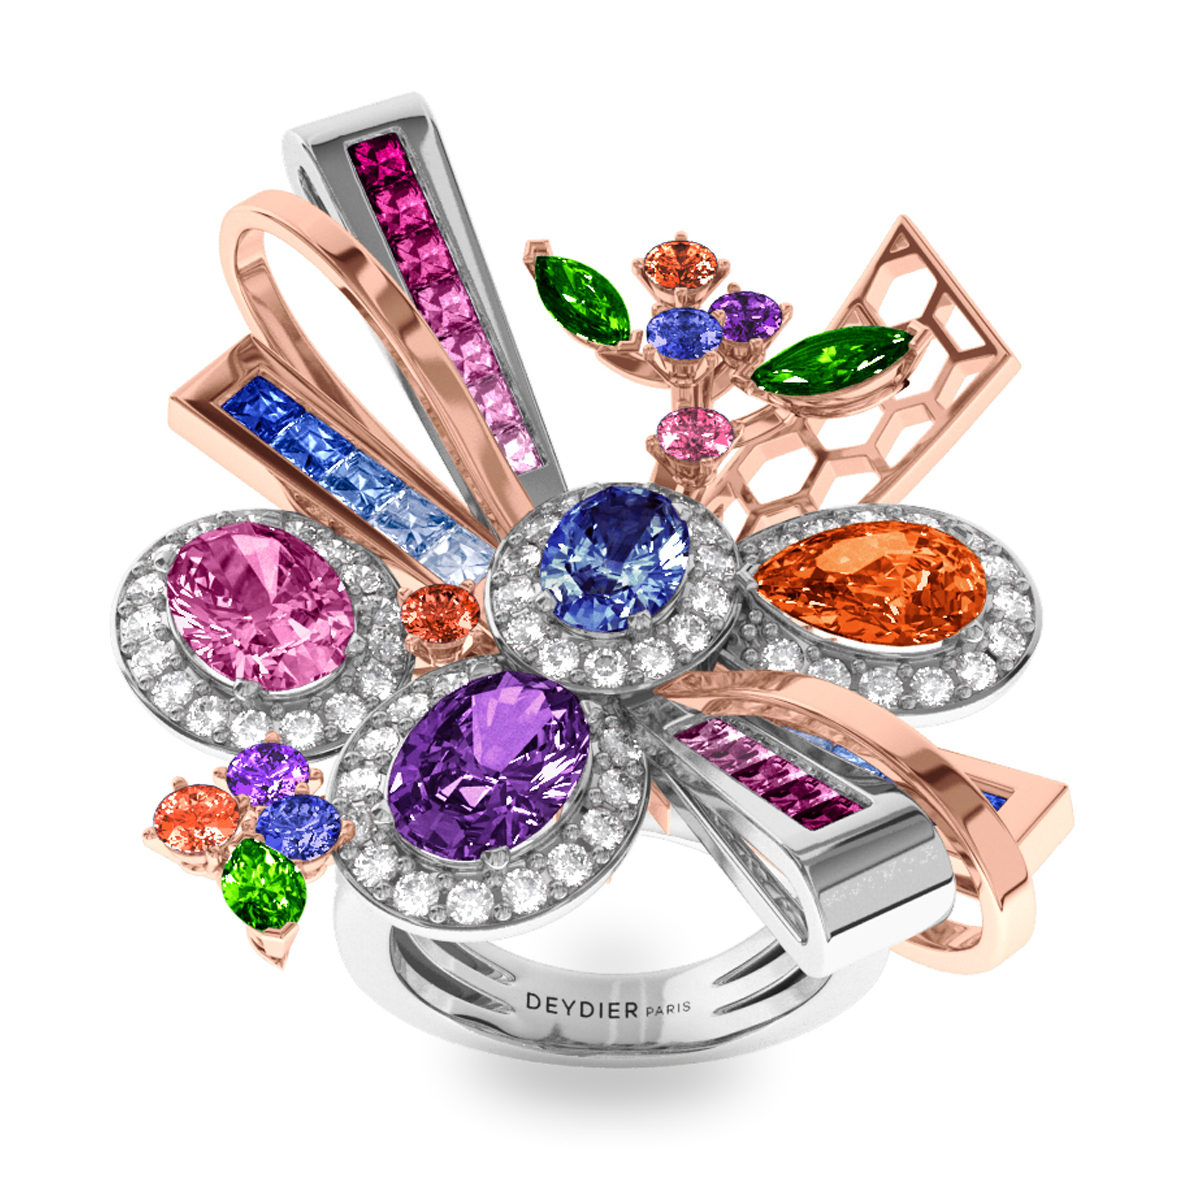 Bague Destiny - Diamants blancs, saphirs & tsavorites <br> Or blanc et rose 18 carats